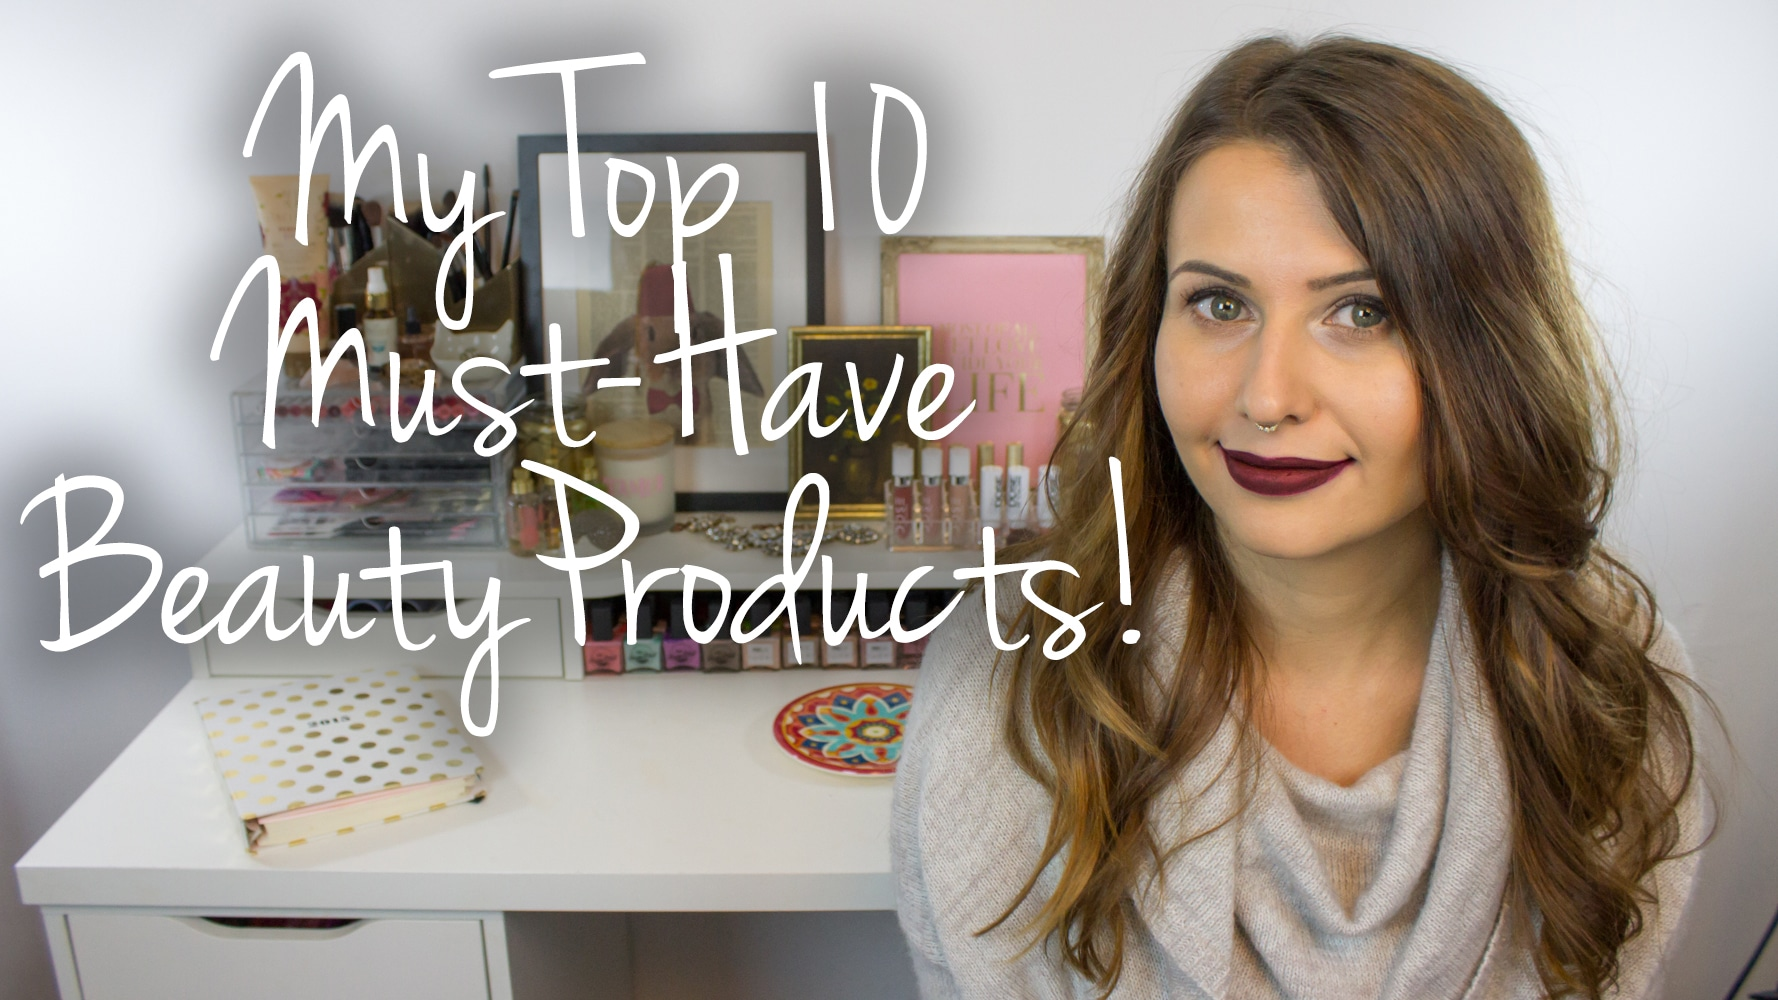 Top 10 Must-Have Cruelty Free & Vegan Beauty Faves Tag Video